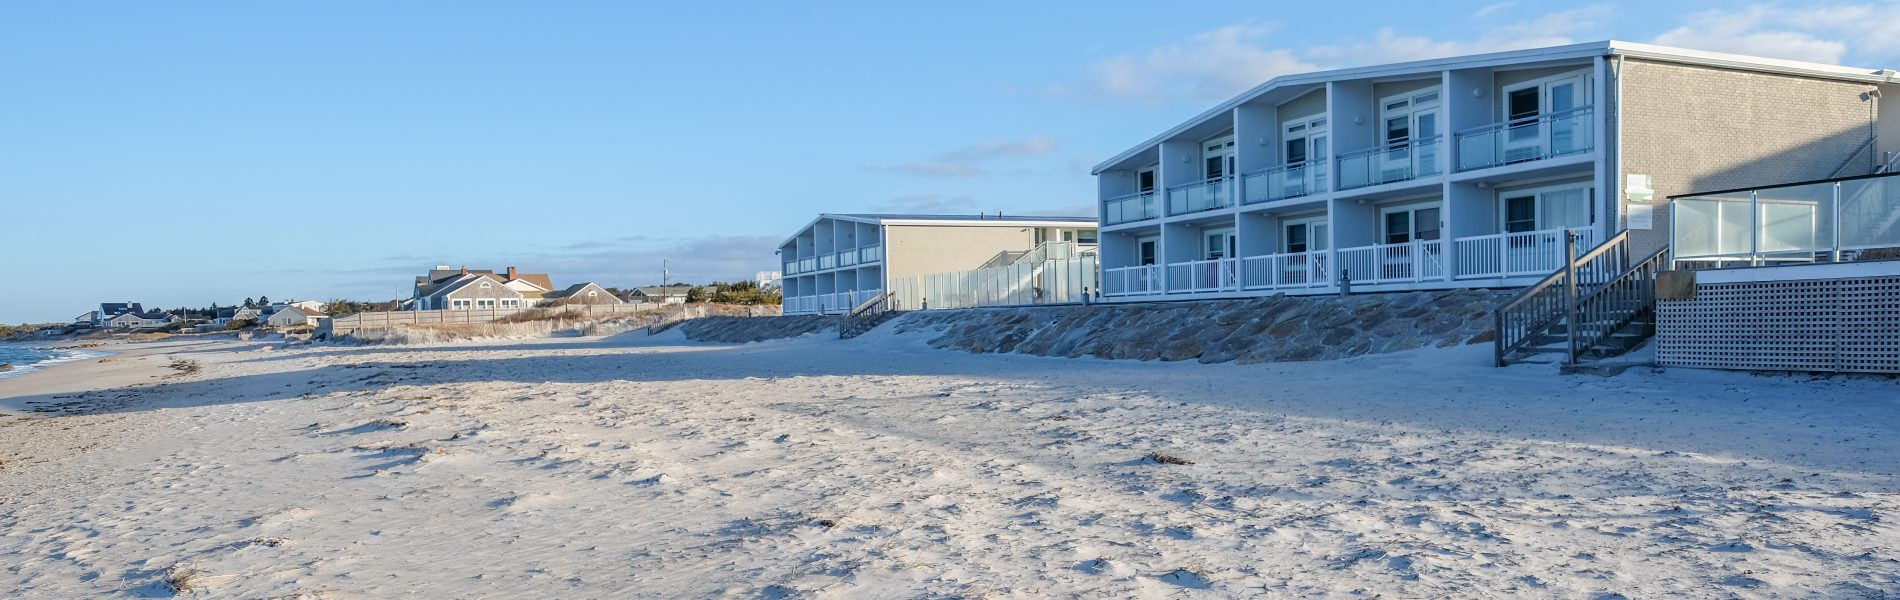 Falmouth Cape Cod Hotels Stay At Sea Crest Beach Hotel